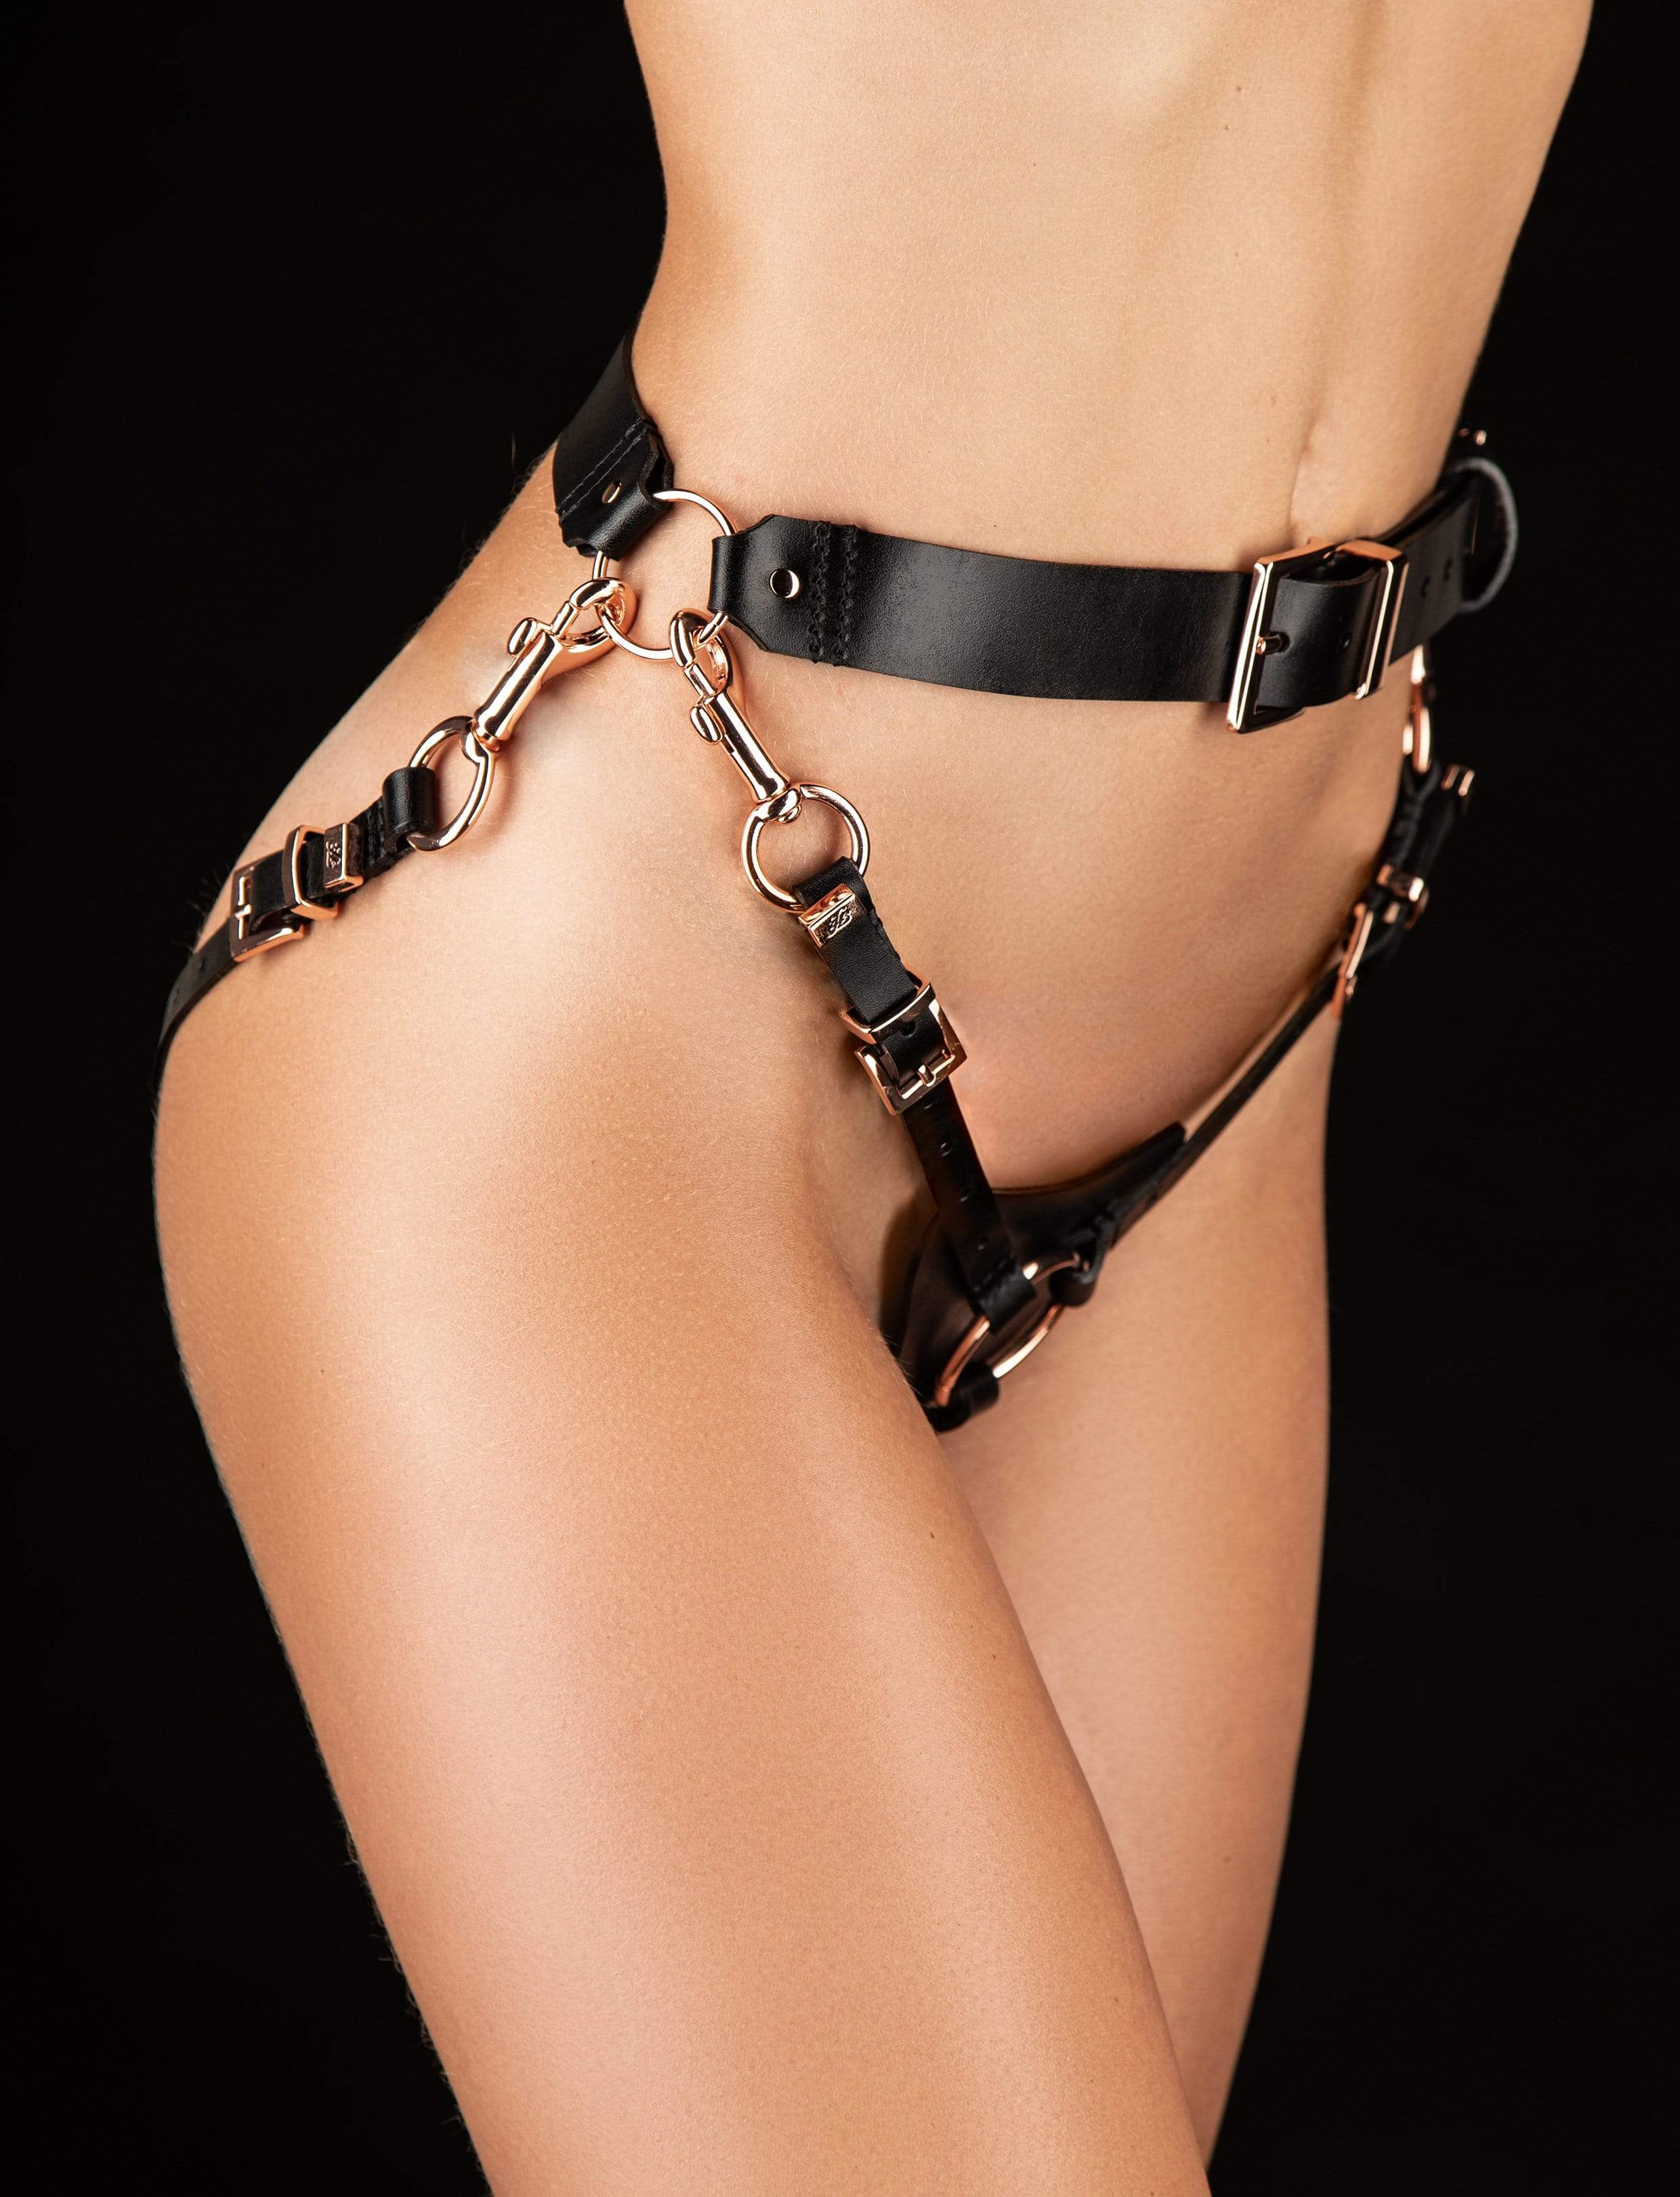 Strap In Set | Shop  Lingerie Honey Birdette